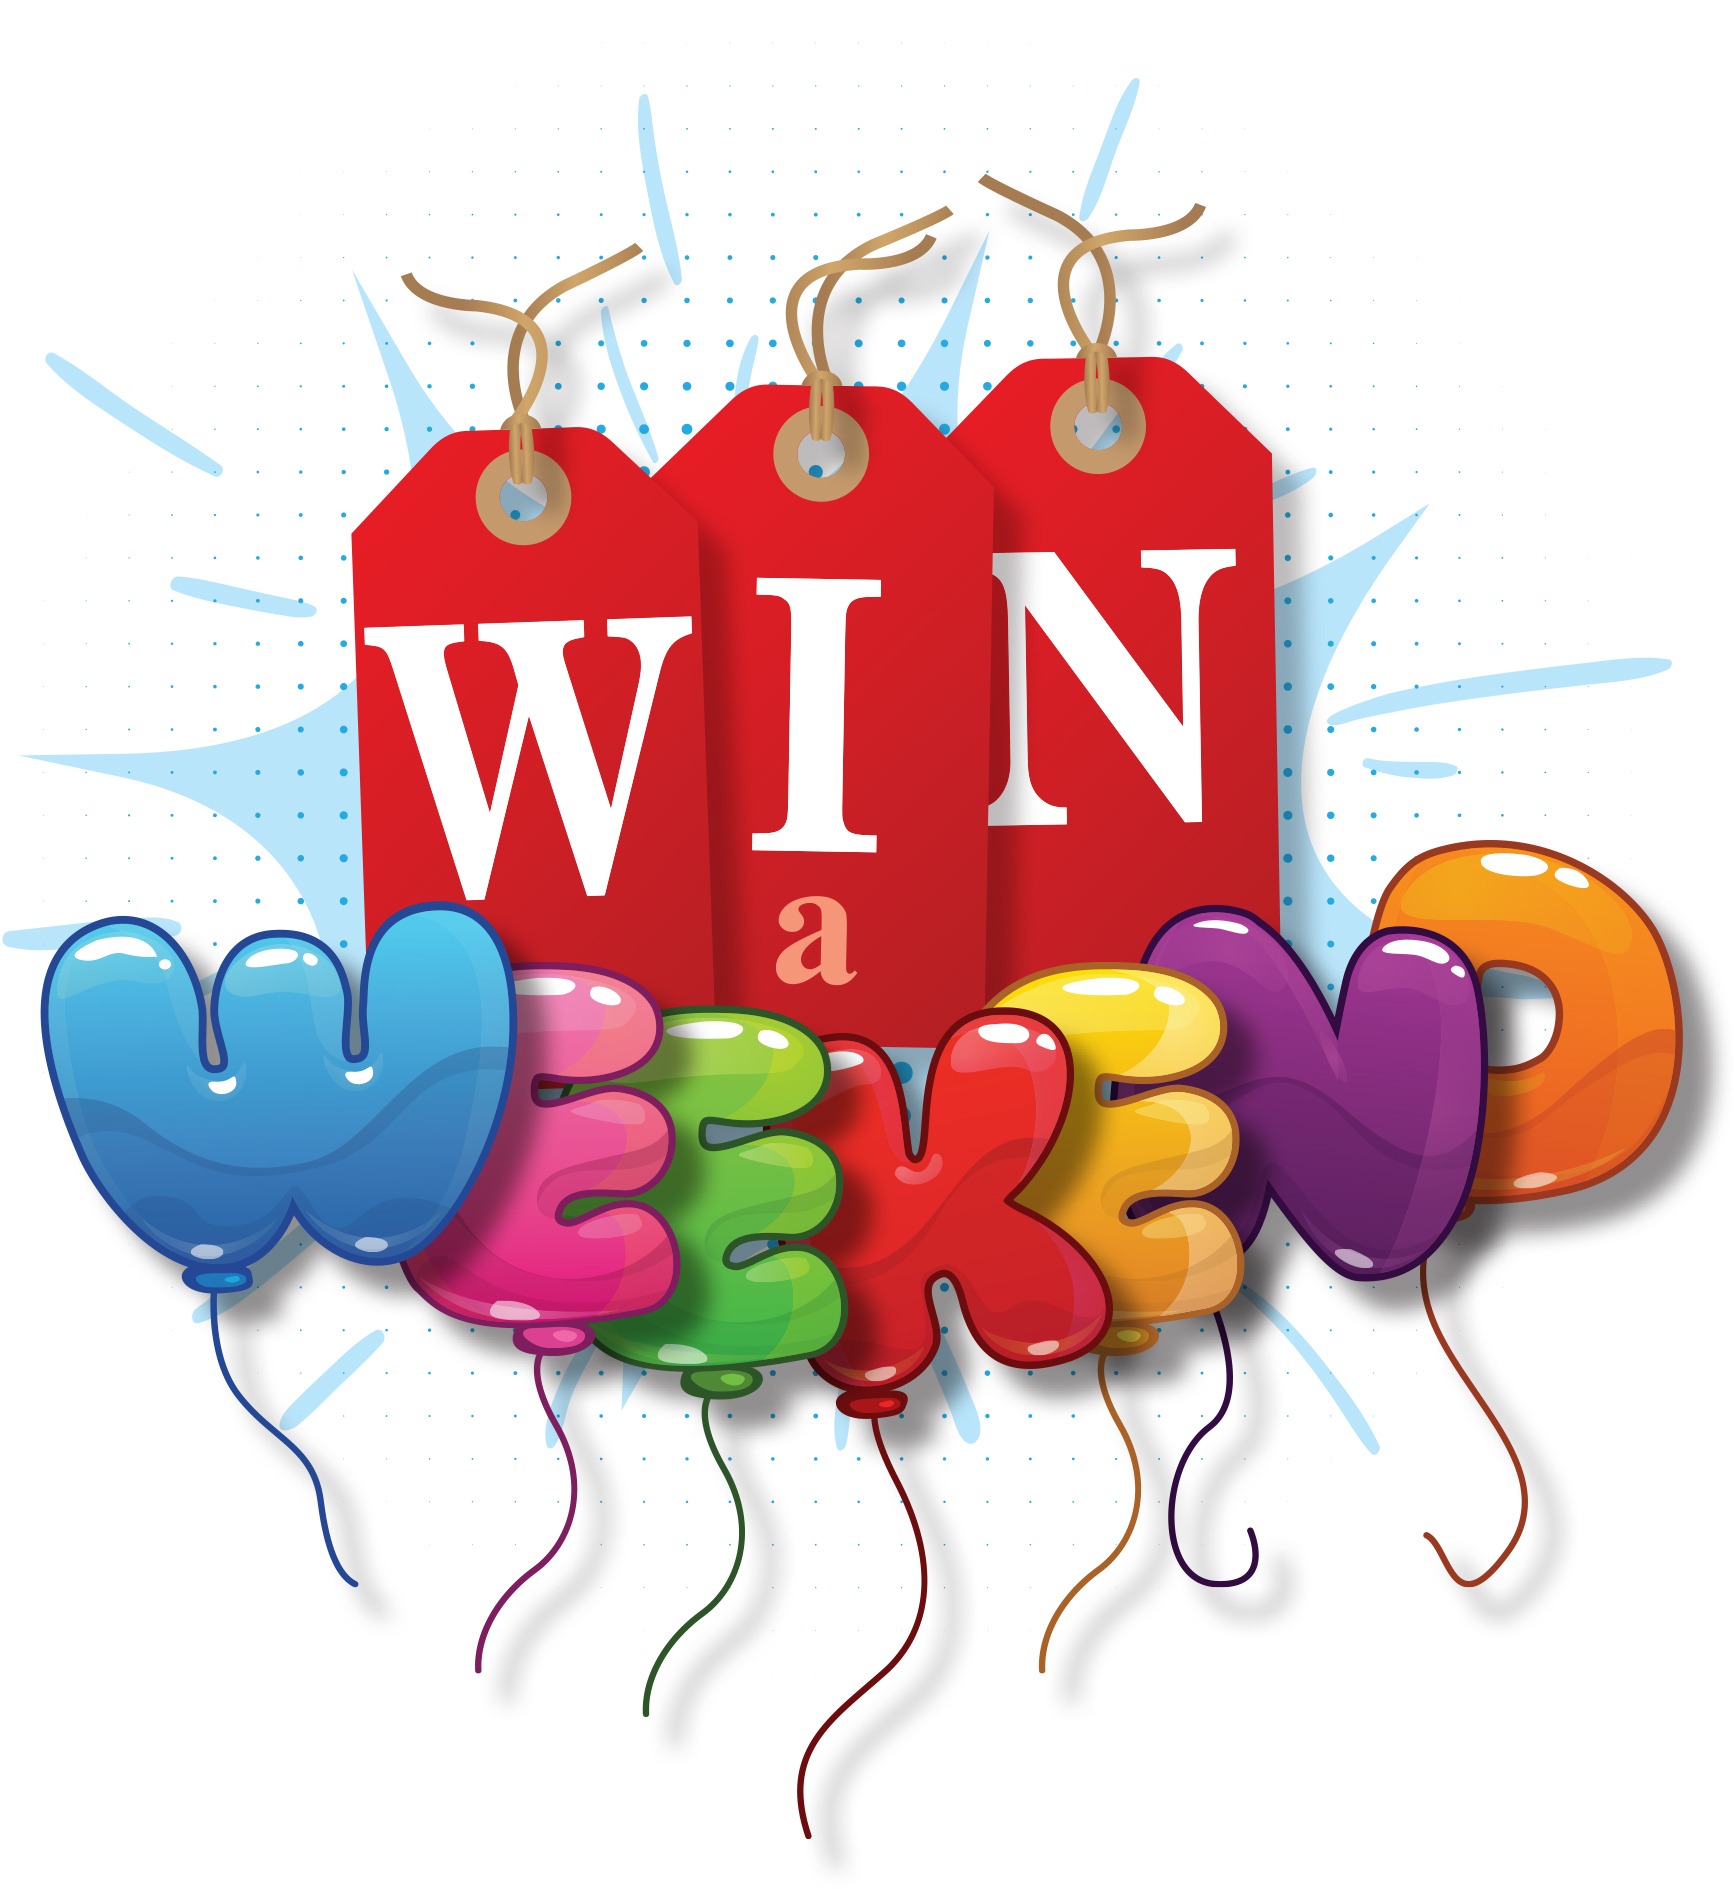 Win a Weekend